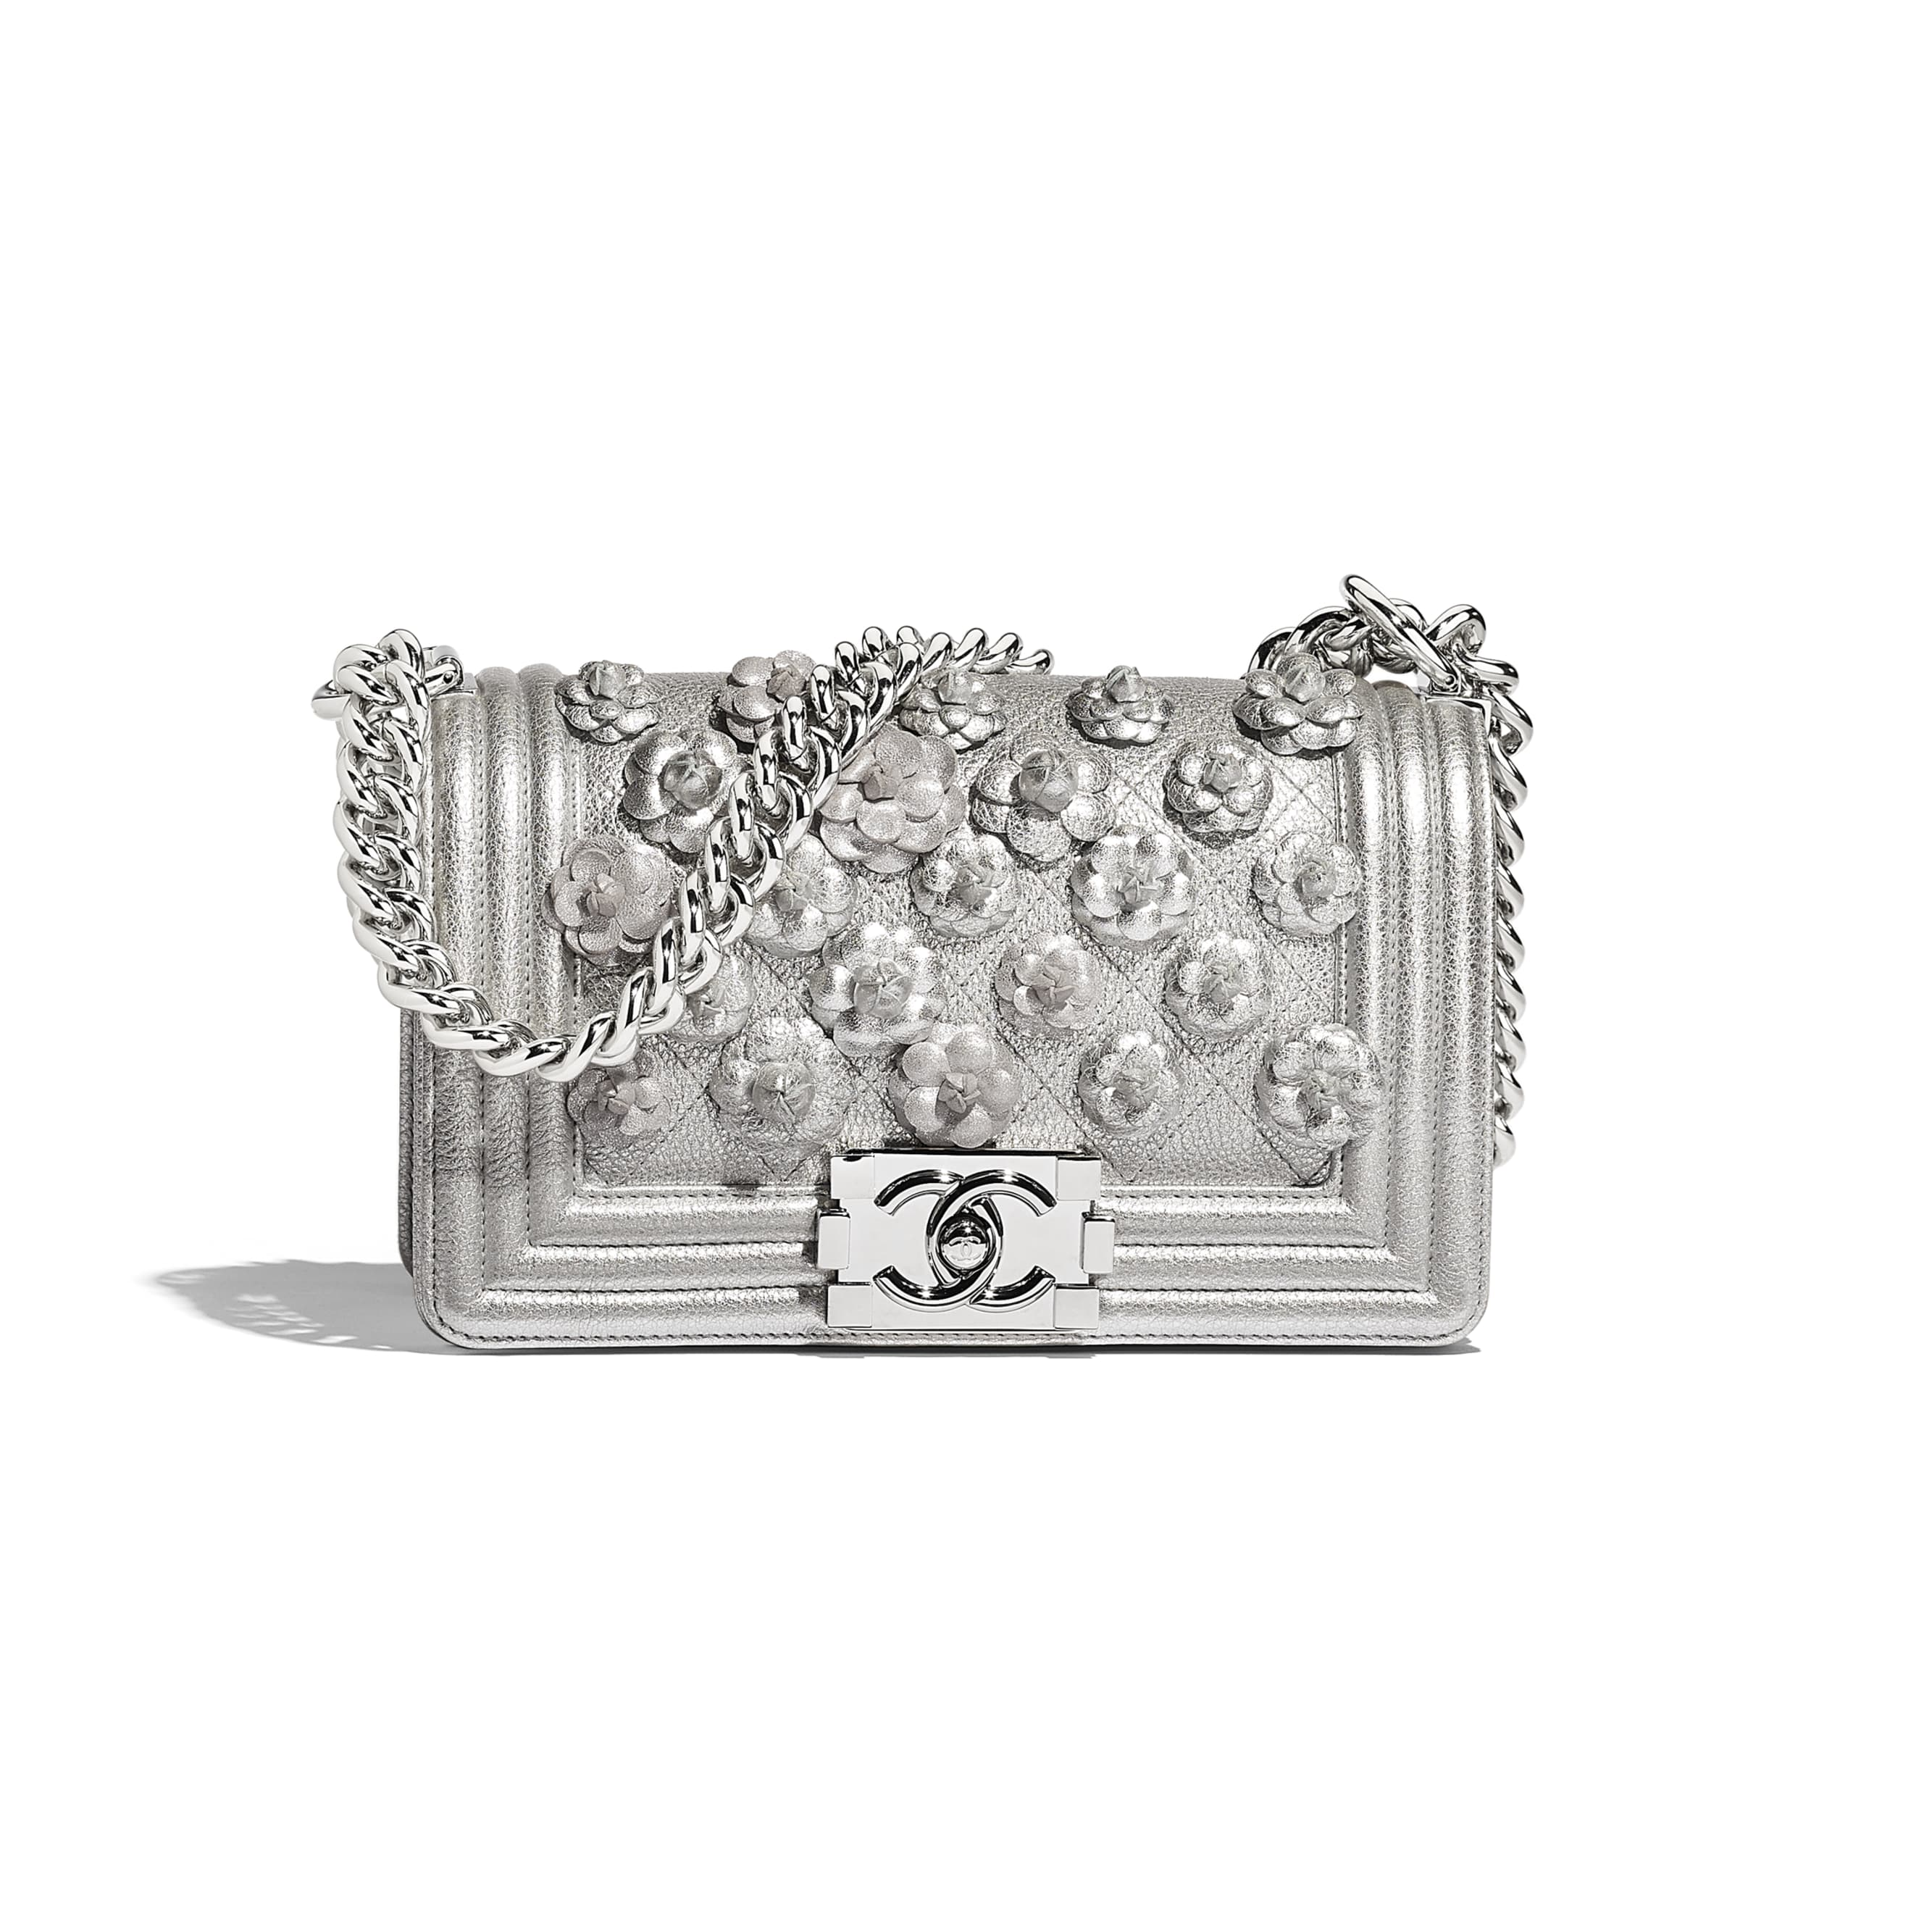 Small BOY CHANEL Handbag - Silver - Embroidered Metallic Grained Calfskin & Silver-Tone Metal - Default view - see standard sized version